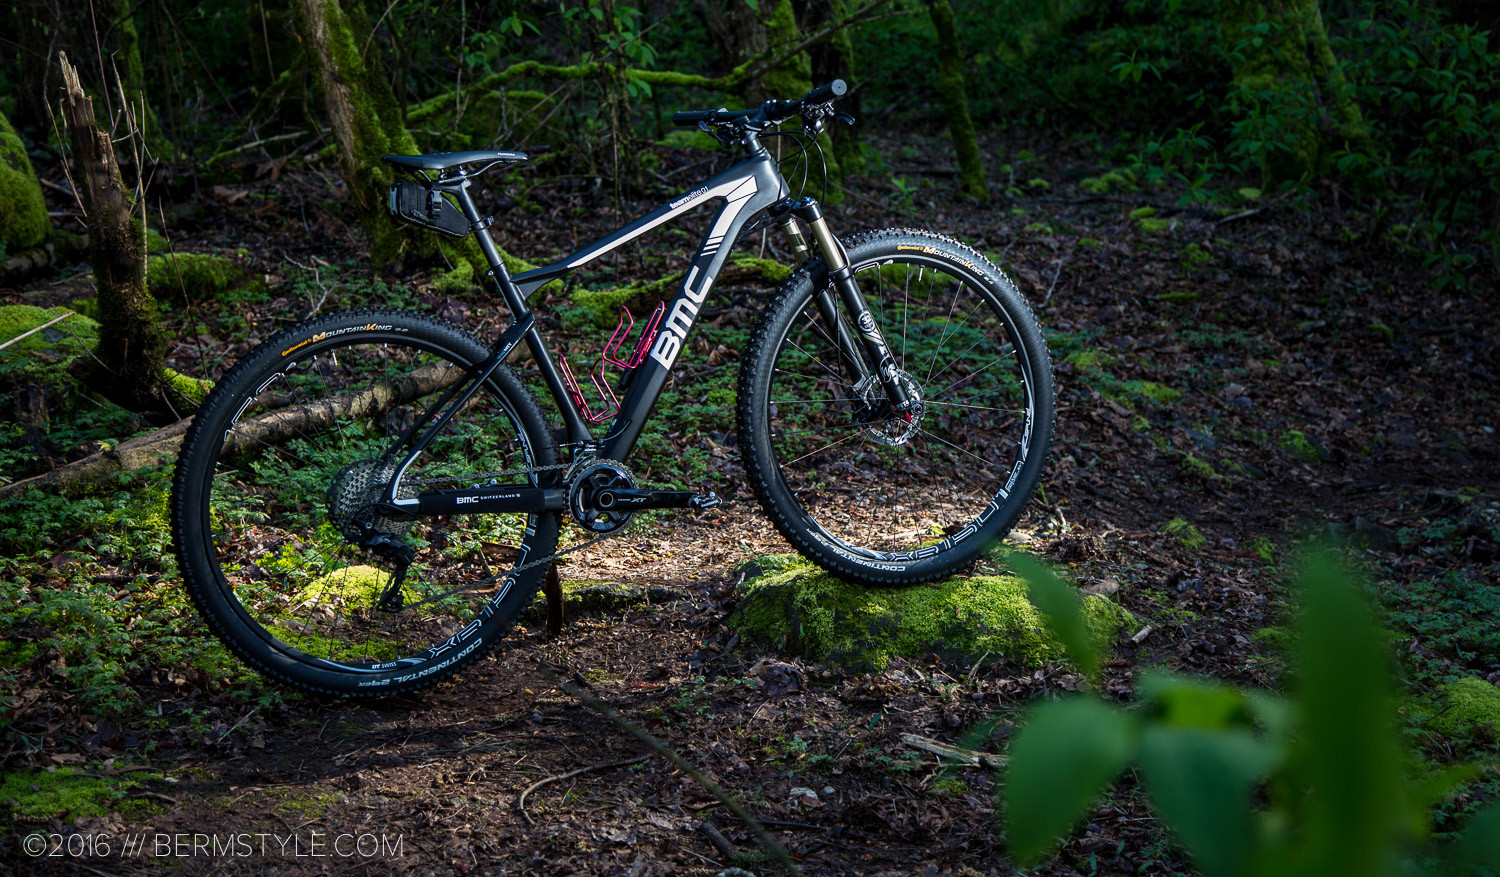 BMC Teamelite 29″ Hardtail Featuring Micro Travel Technology